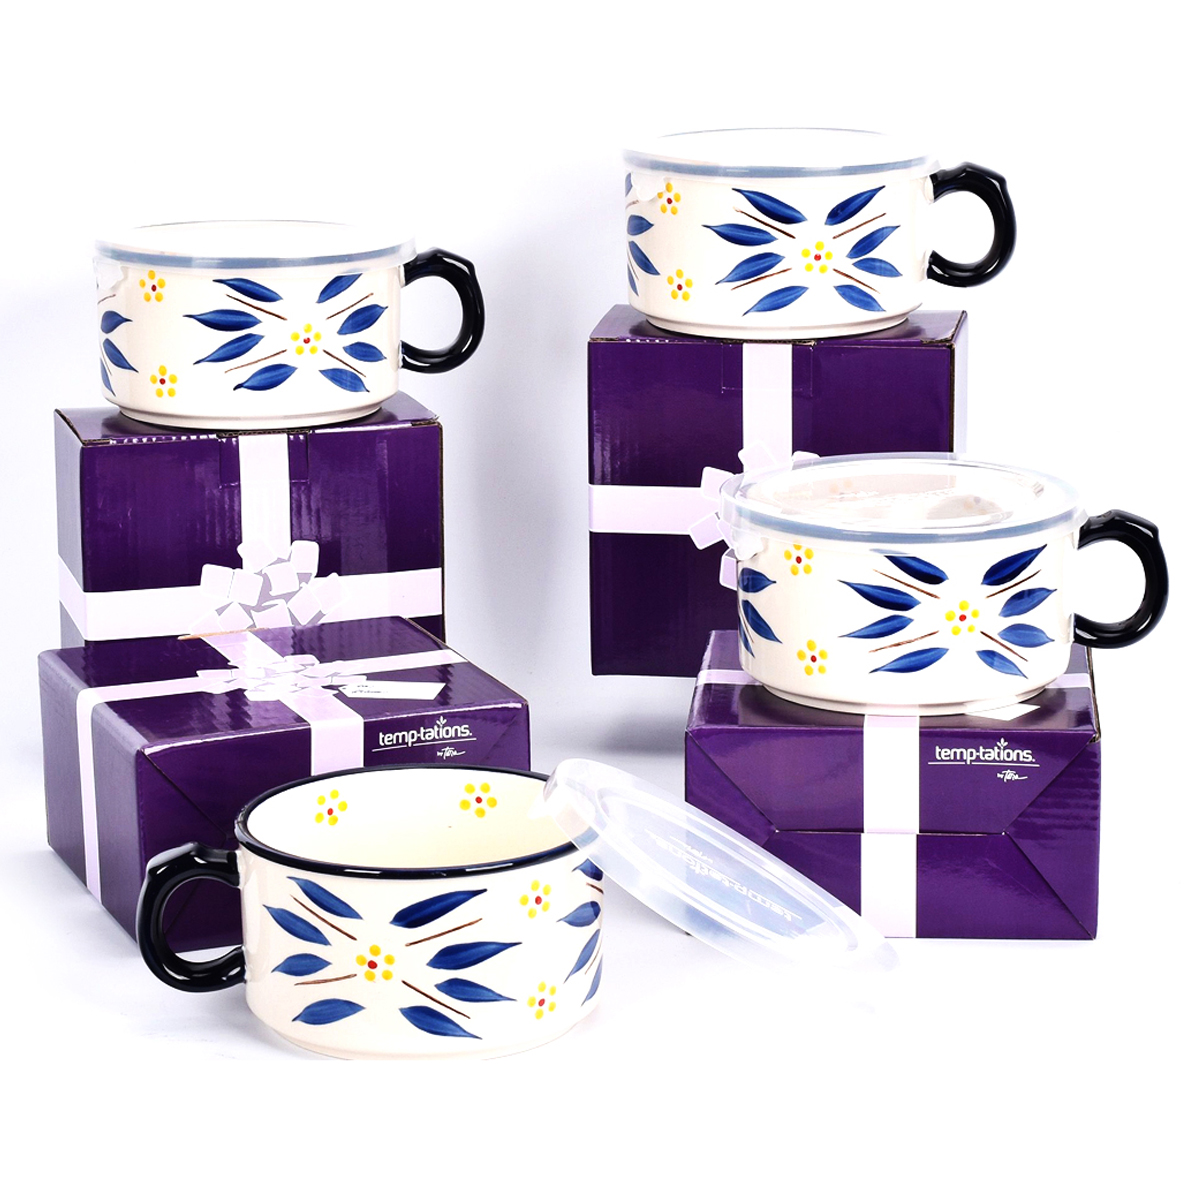 temp-tations® Old World Meal Mugs with Gift Boxes Set – 4 Piece – Blue